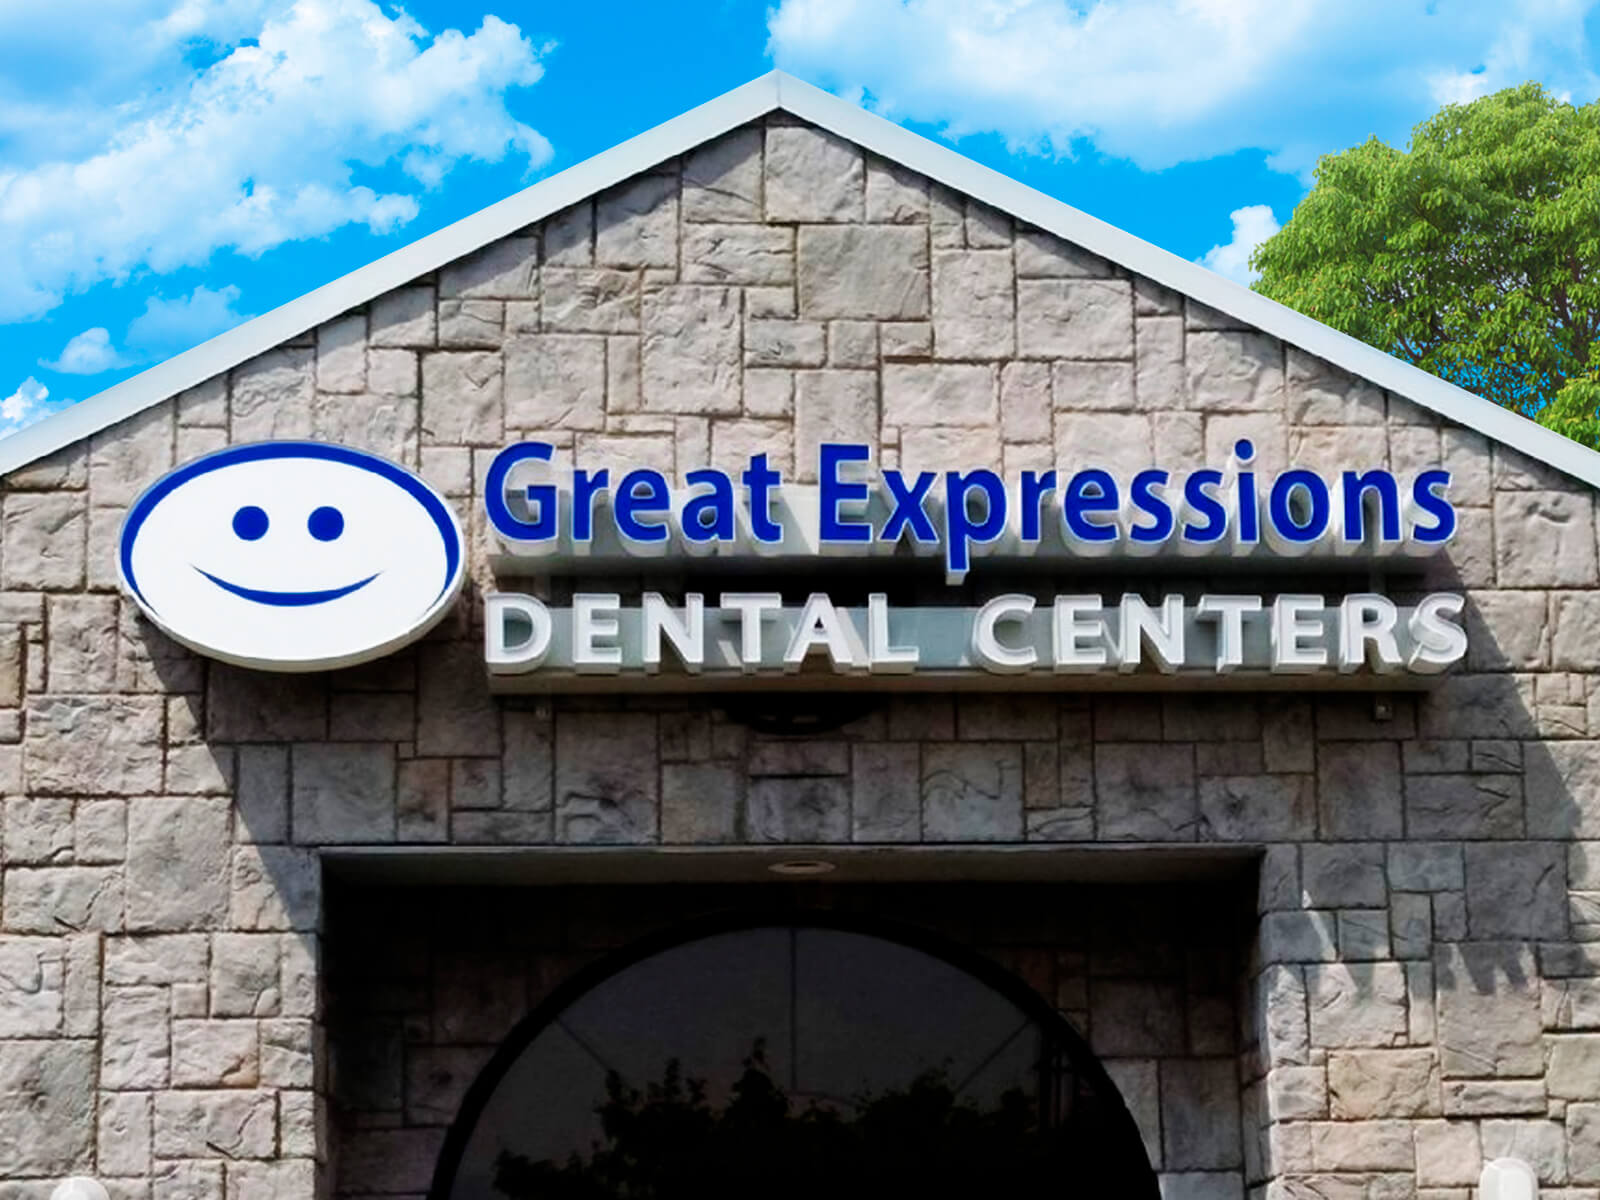 Channel letter signage for one of several Great Expressions Dental Centers.